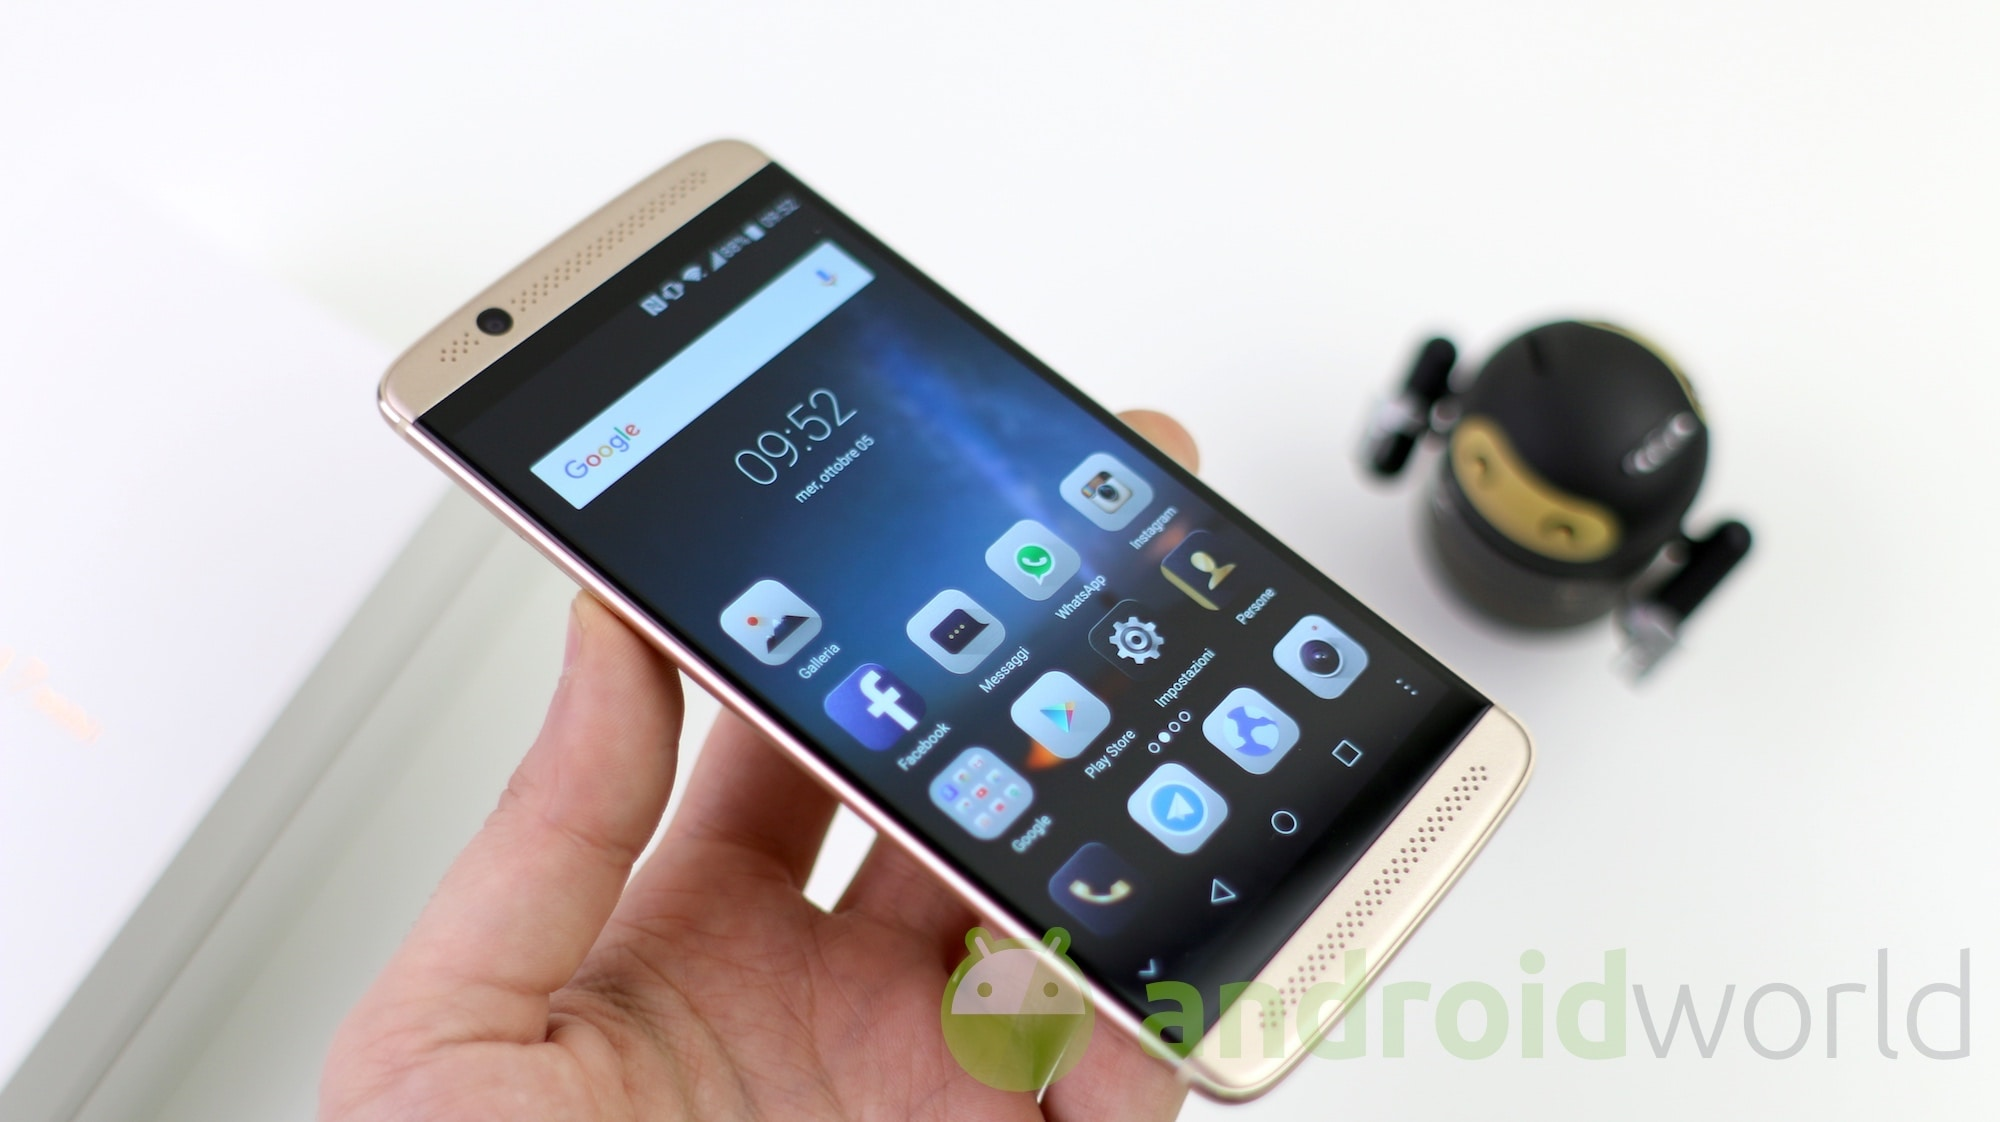 currently zte axon 7 mini forum have disappeared